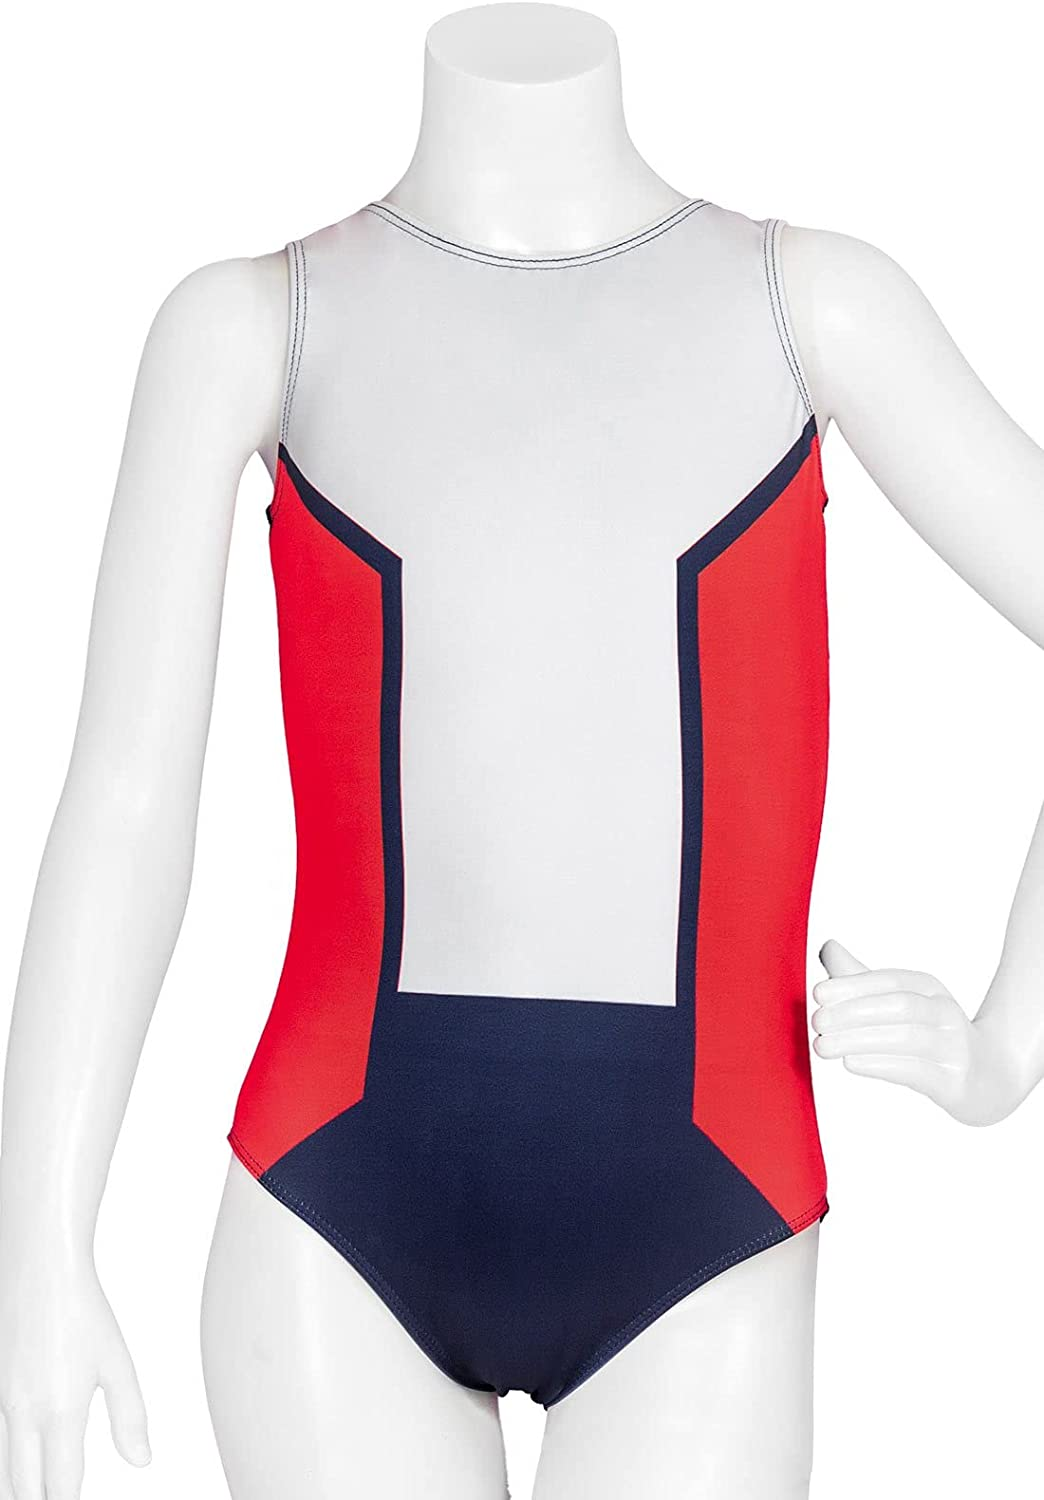 Destira All Long Beach Mall Max 56% OFF American Red White Leotard Girl's So Vintage Blue